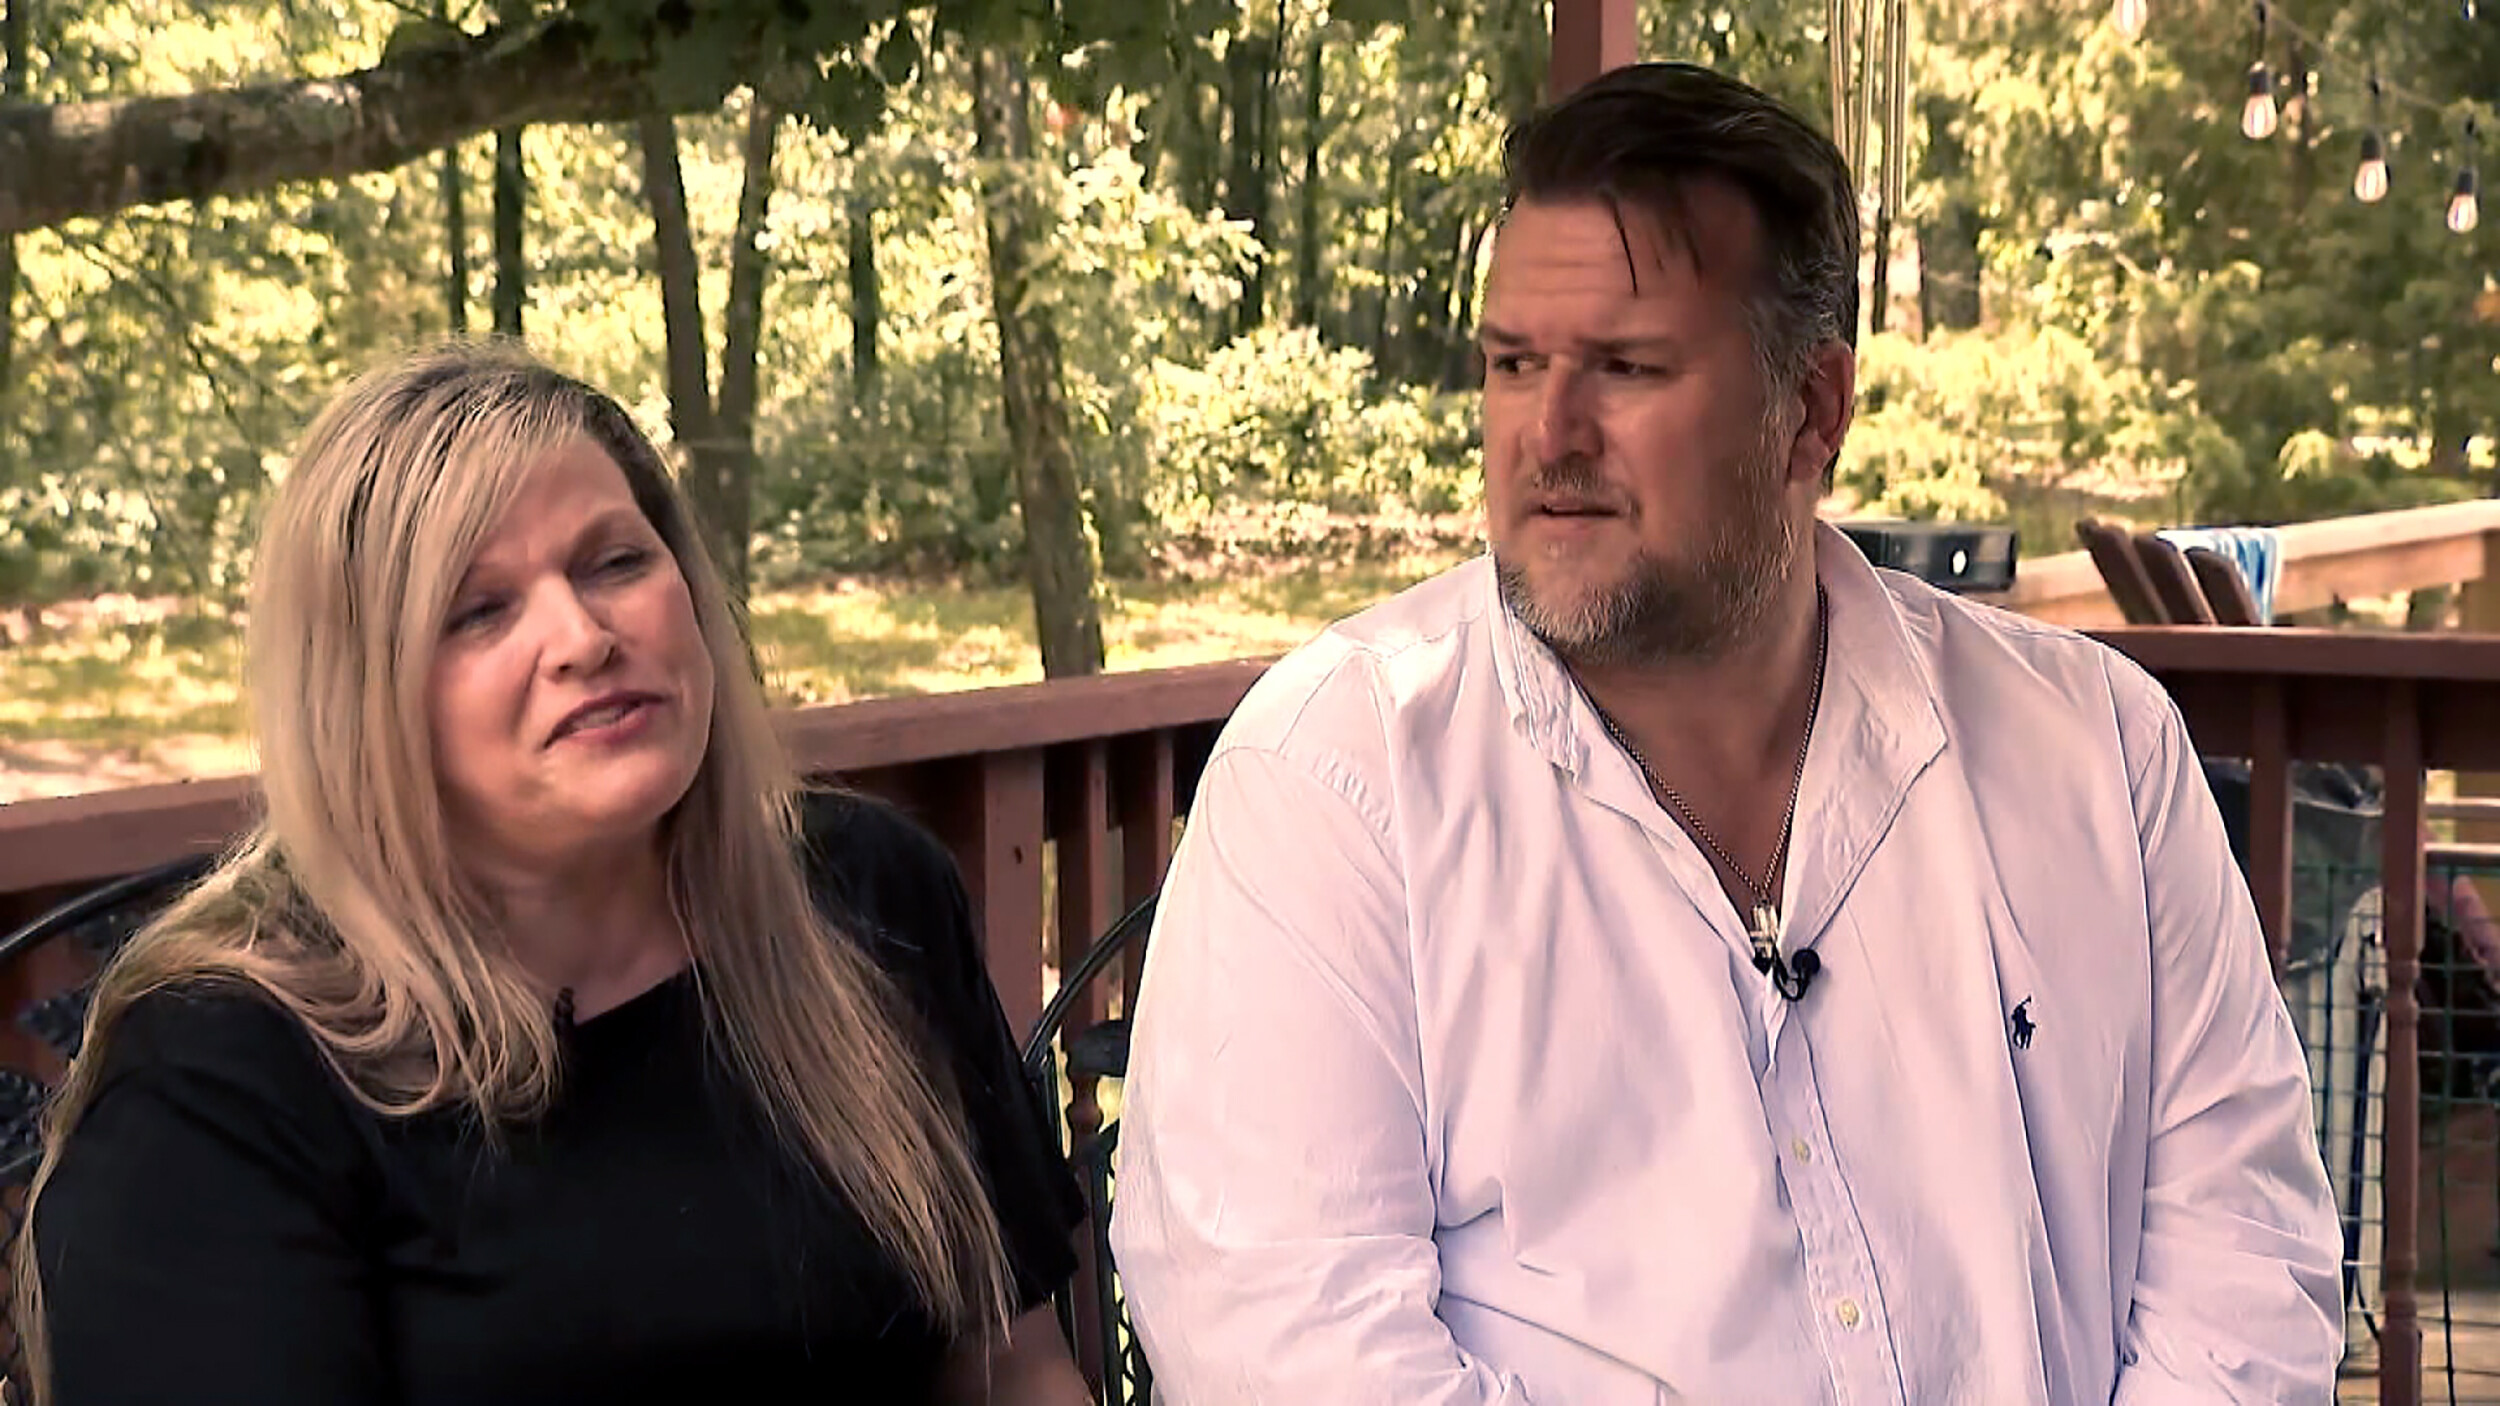 A Missouri couple says they dragged their feet on getting the Covid-19 vaccine. Then they got sick